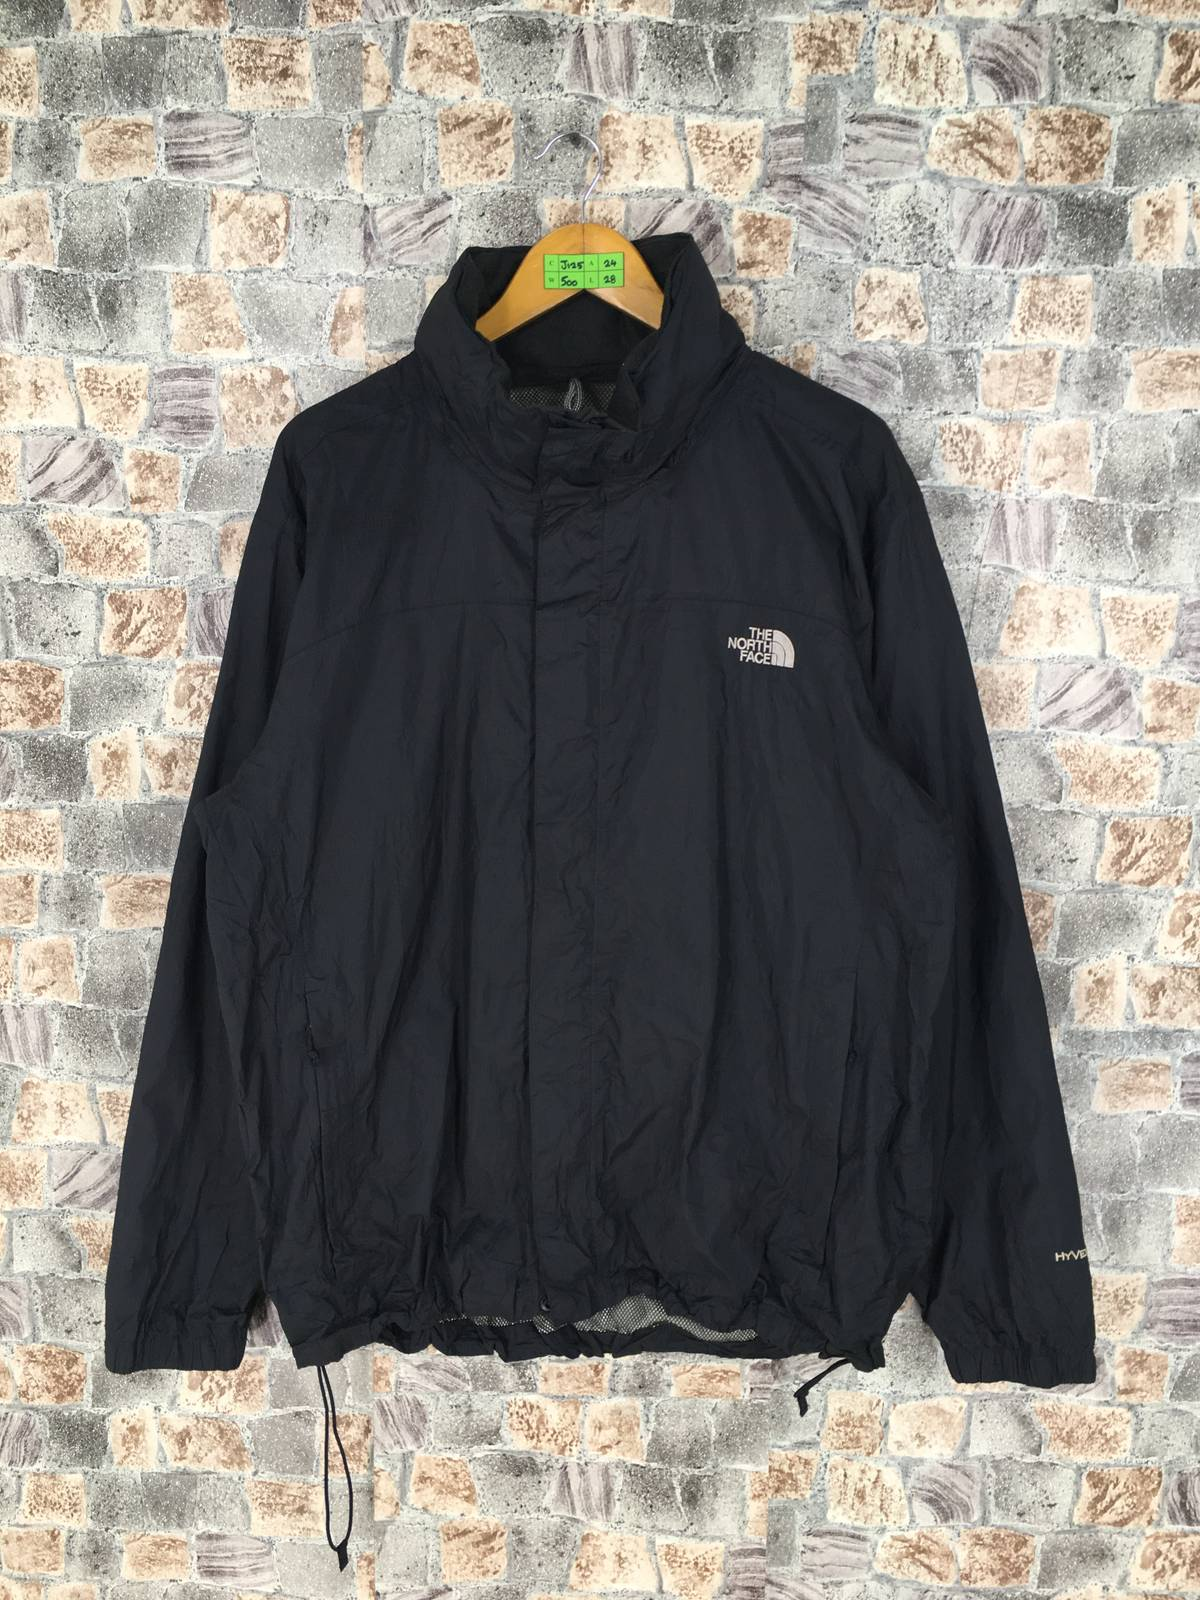 The North Face × Windbreaker Vintage 90's The North Face Jacket Hoodie Mens  Large North Face Hyvent Sportswear Windbreaker Jacket Coat The North Face